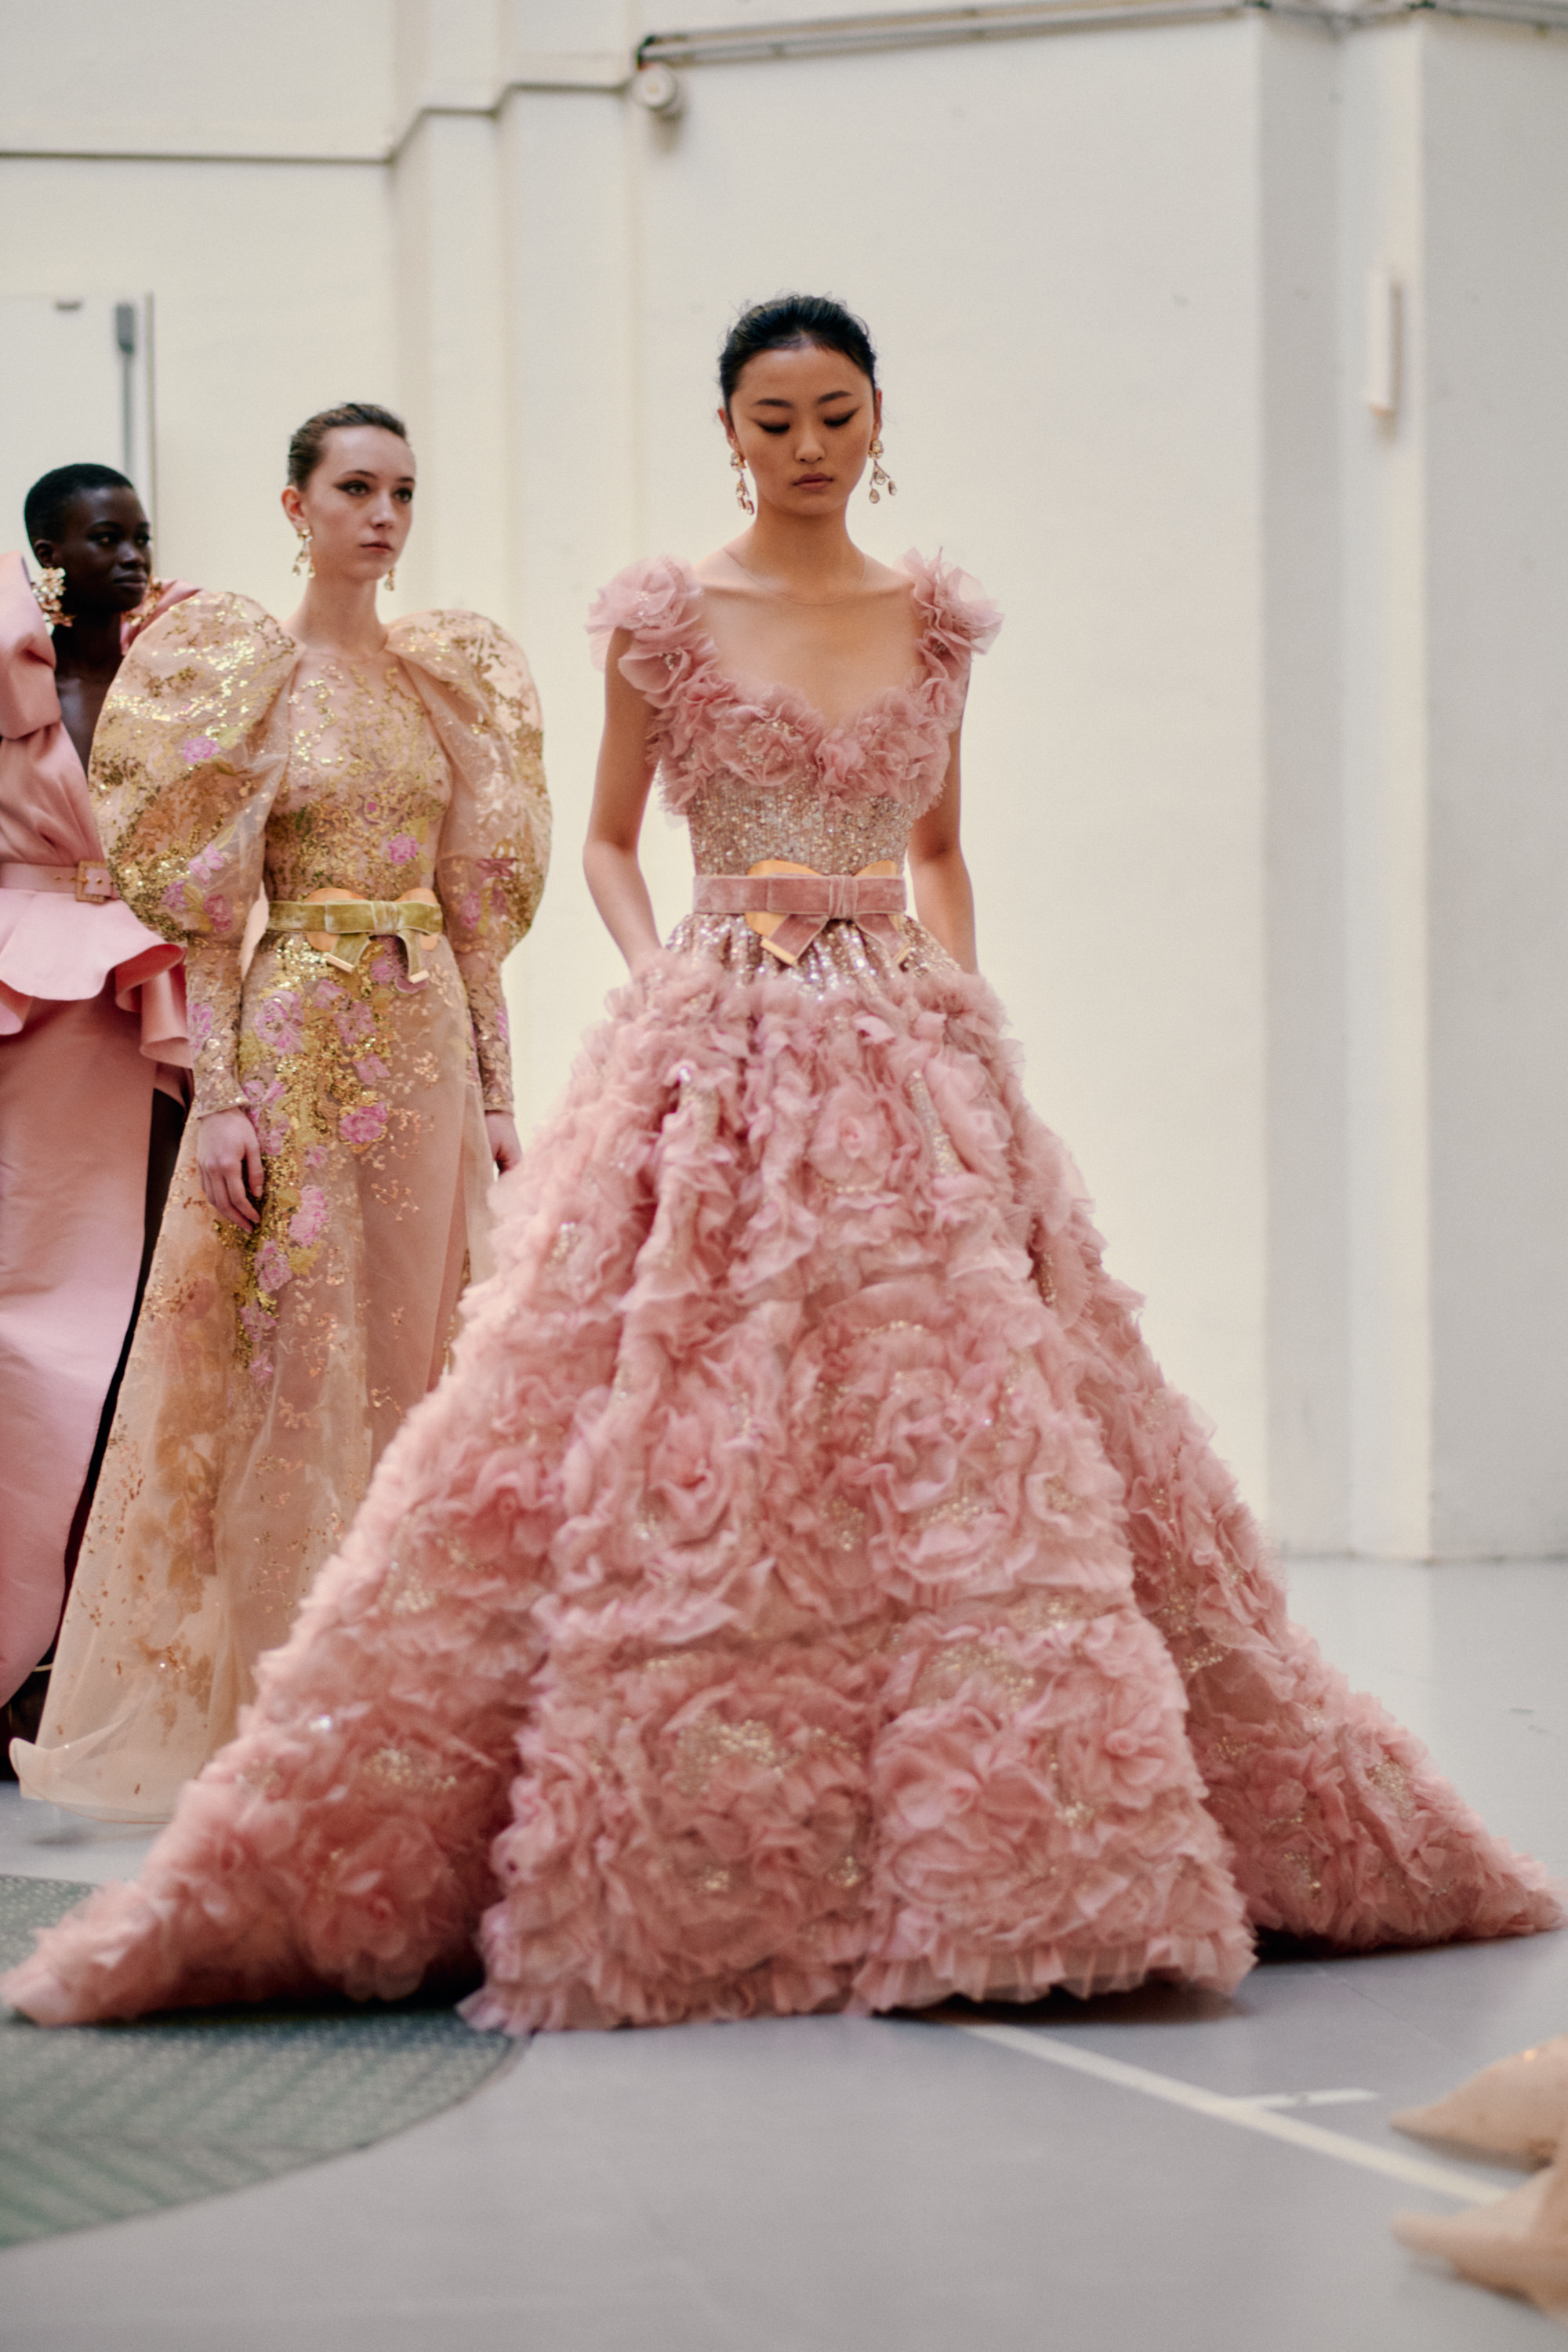 0481_ElieSaab_Couture_Vogue_22Jan2020_Credit-Jamie-Stoker